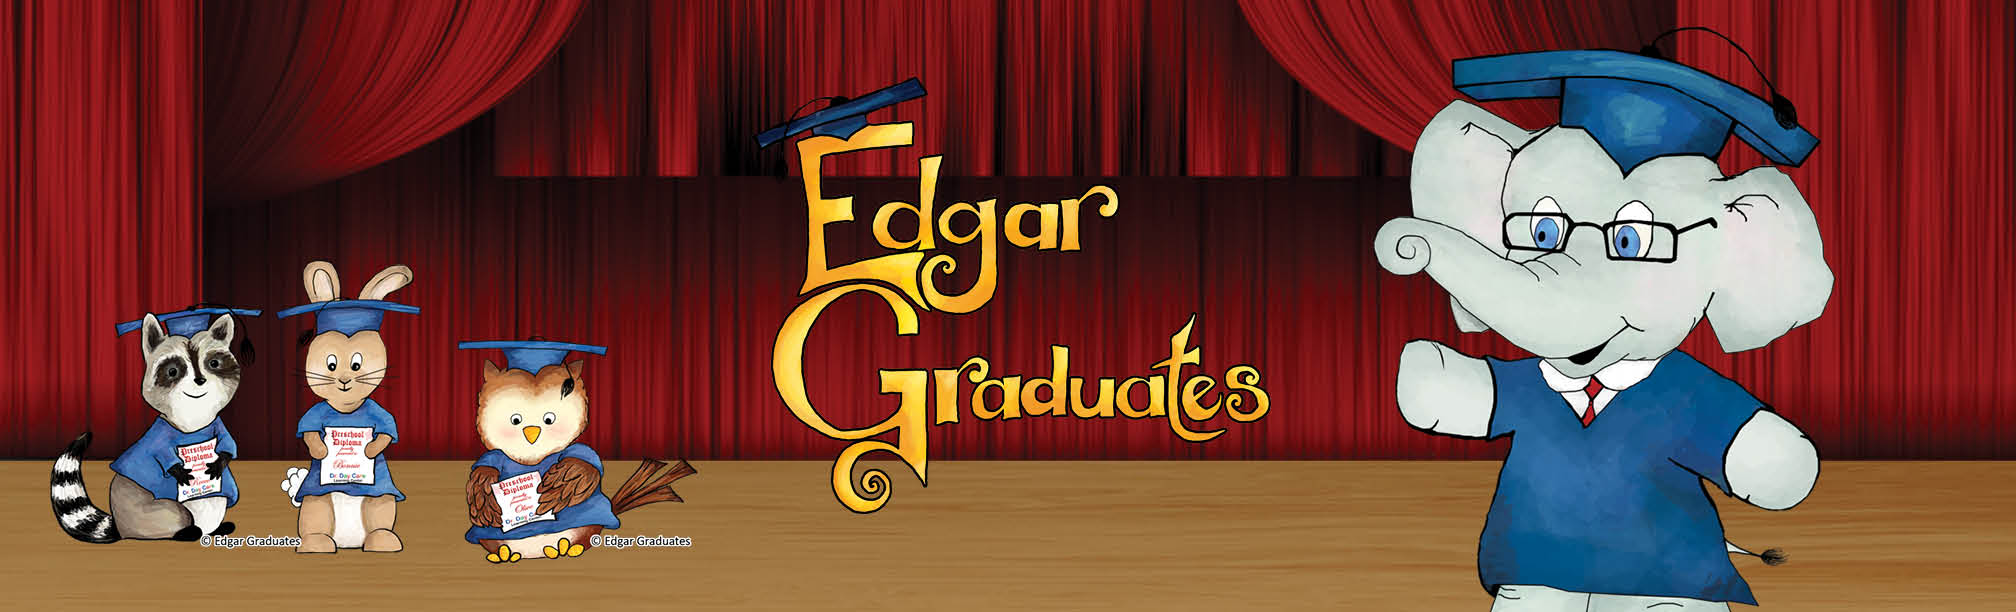 Edgar Graduates – book about graduation